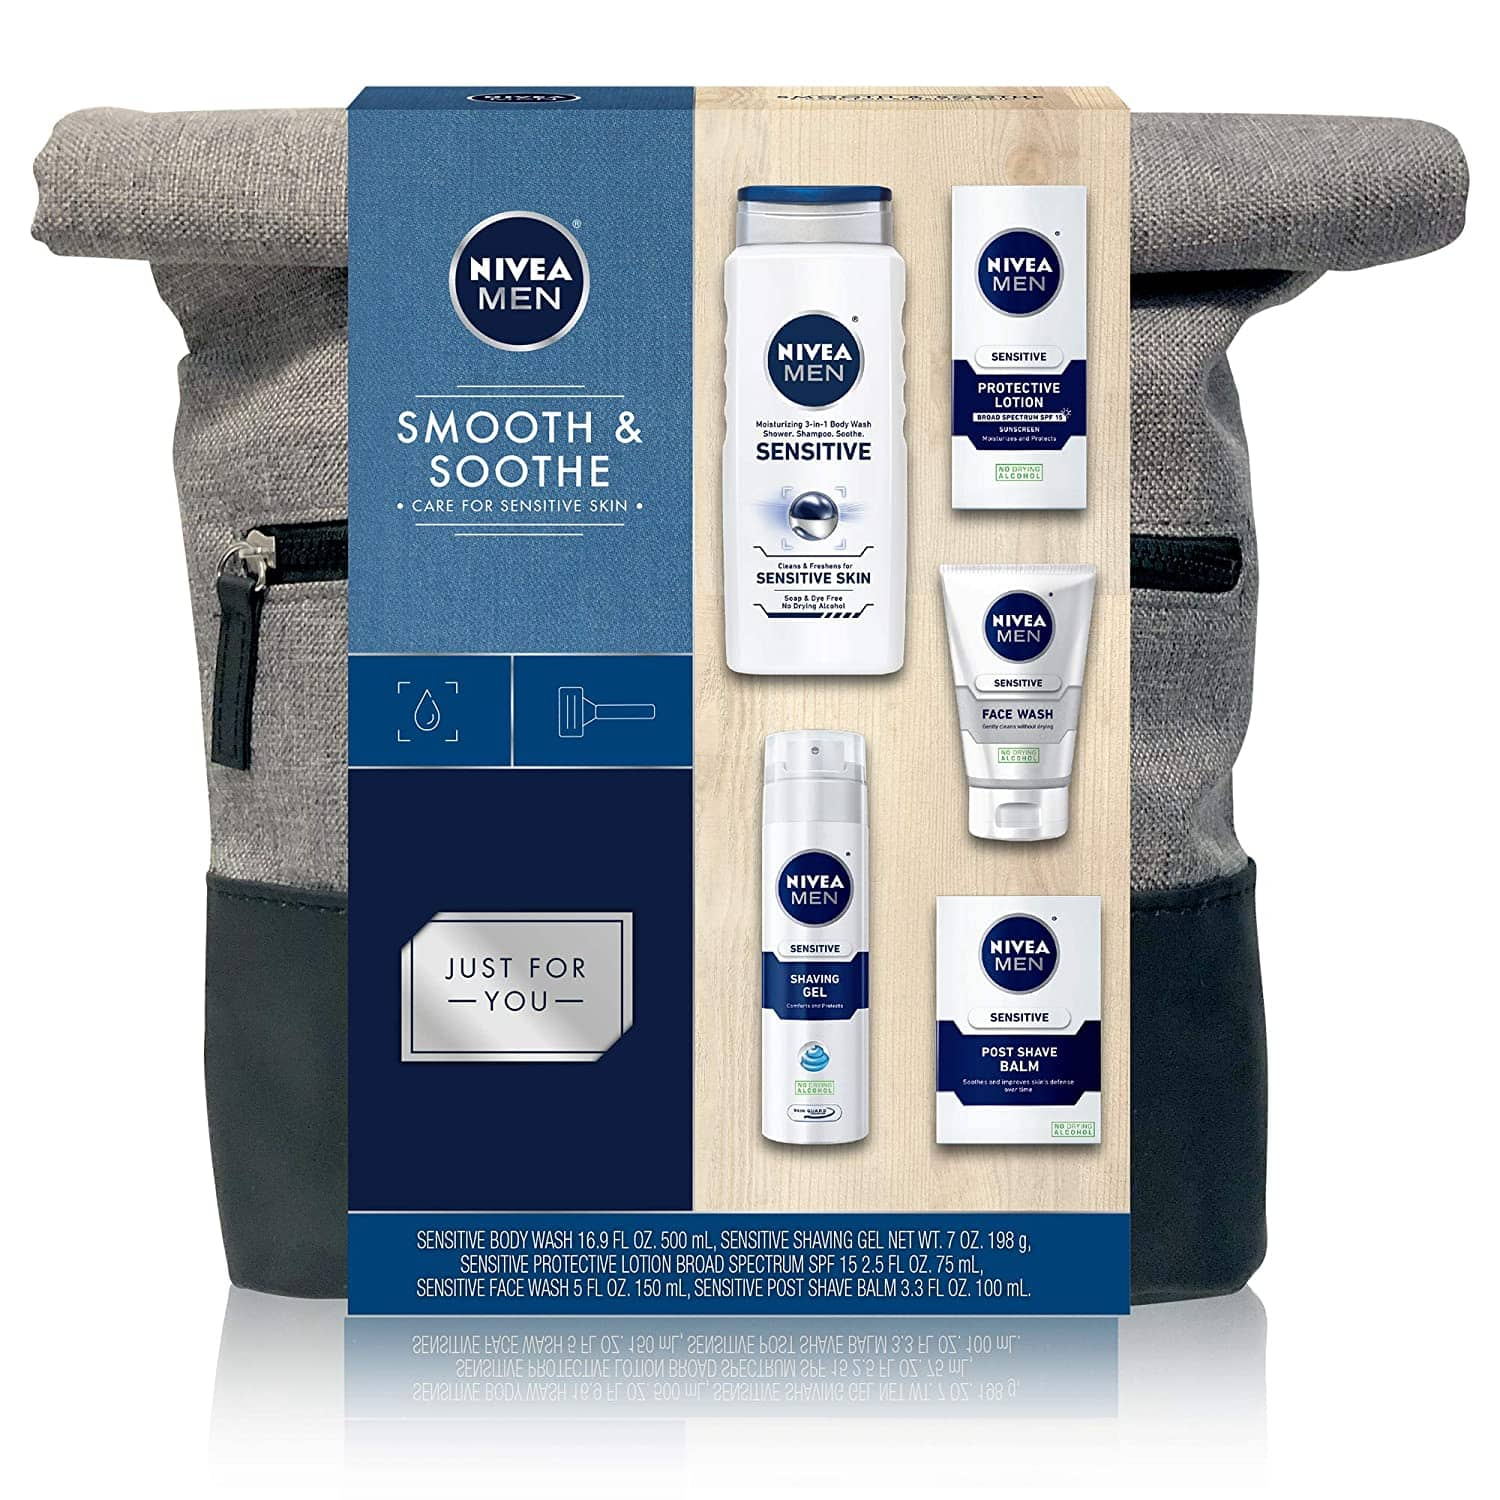 NIVEA Men Dapper Duffel Gift Set - 5 Piece Collection Of On-The-Go Grooming Needs with Travel Bag Included $13.32